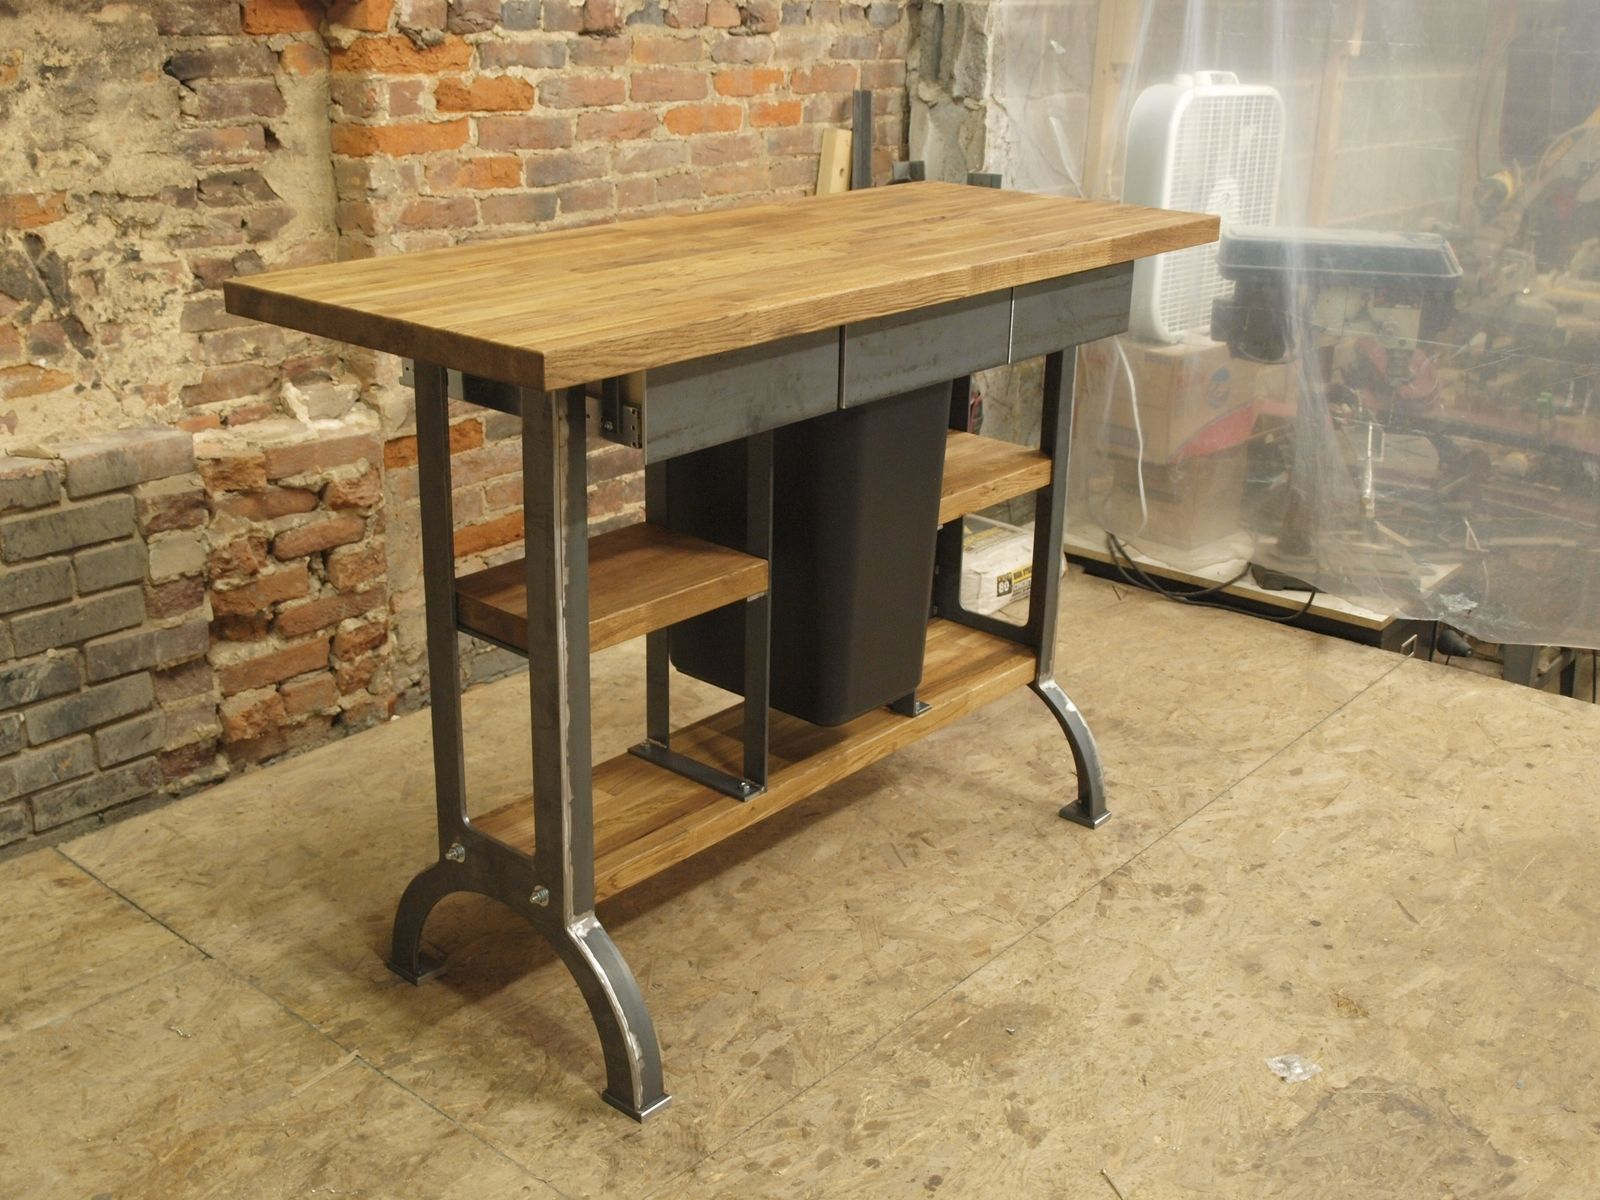 Hand made modern industrial kitchen island console table by camposironworks - Industrial kitchen tables ...